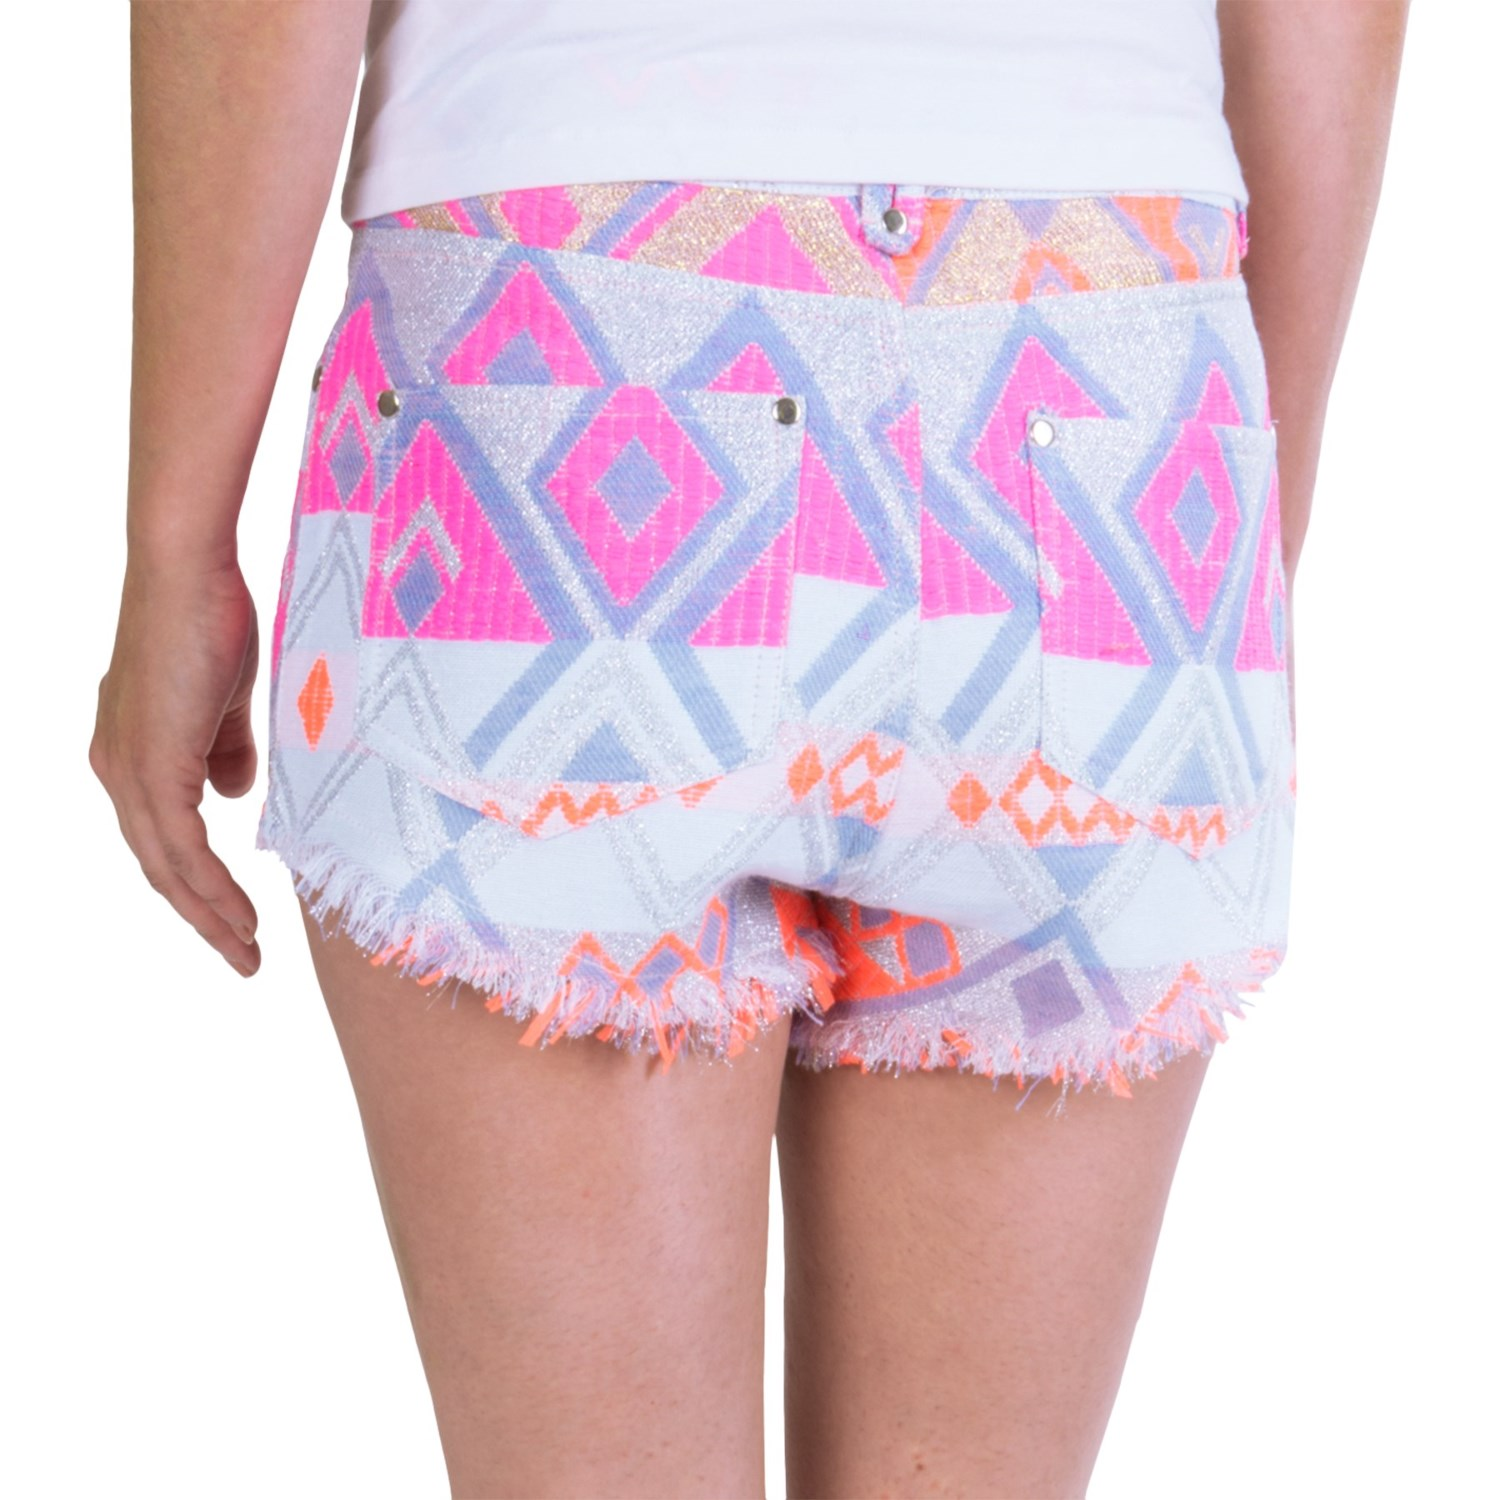 High Waisted Shorts are all the rage right now and it isn't any different in the EDM scene. We carry top ravewear brands that have creatively taken this stylish trend brought back from the 90's and added to it the EDM flair it needed.